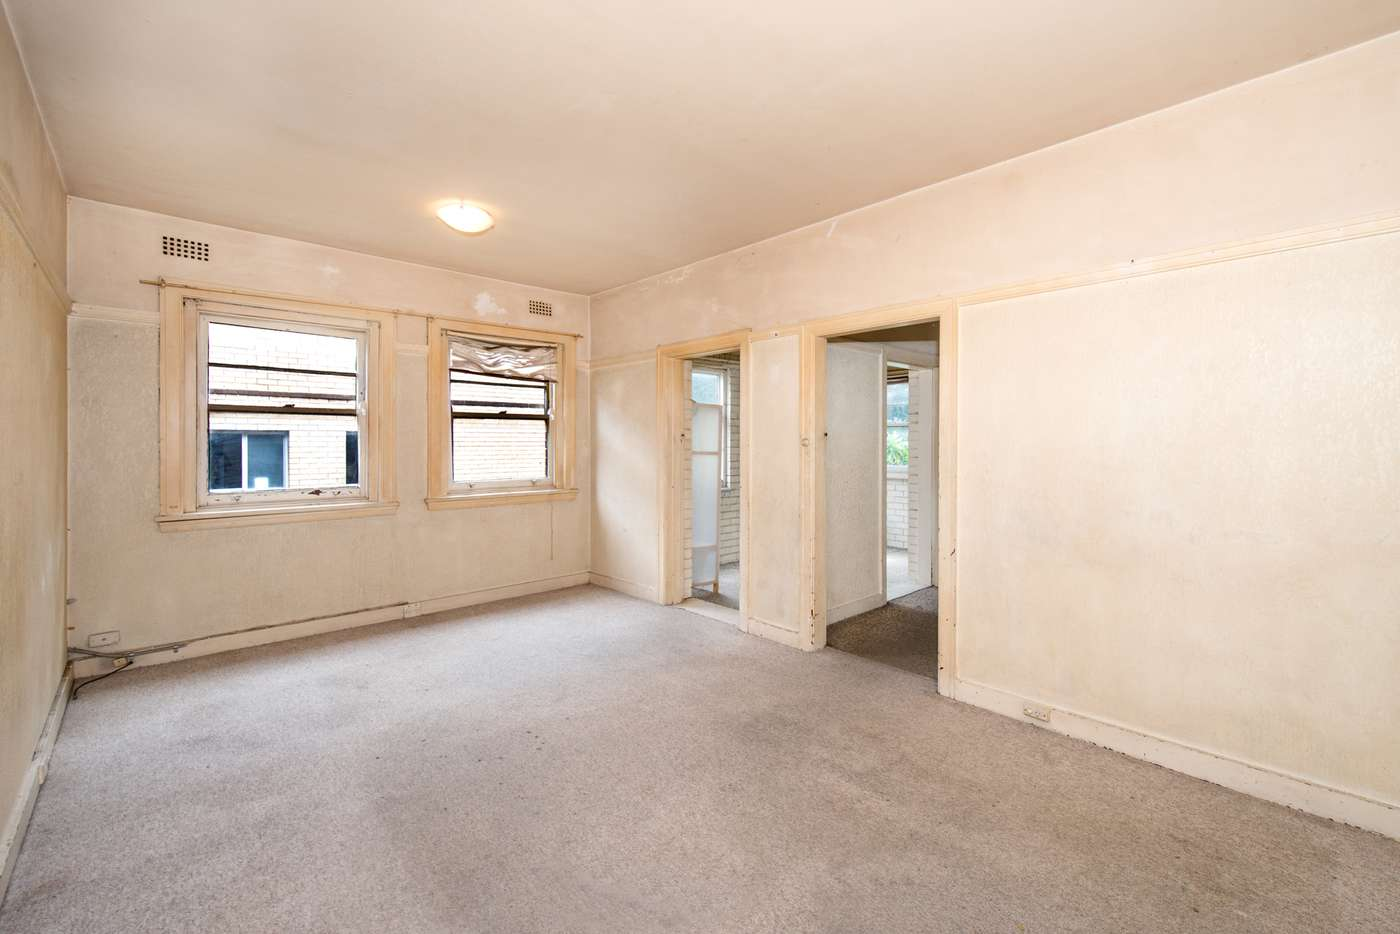 Fifth view of Homely unit listing, 6/6 Duke Street, Kensington NSW 2033